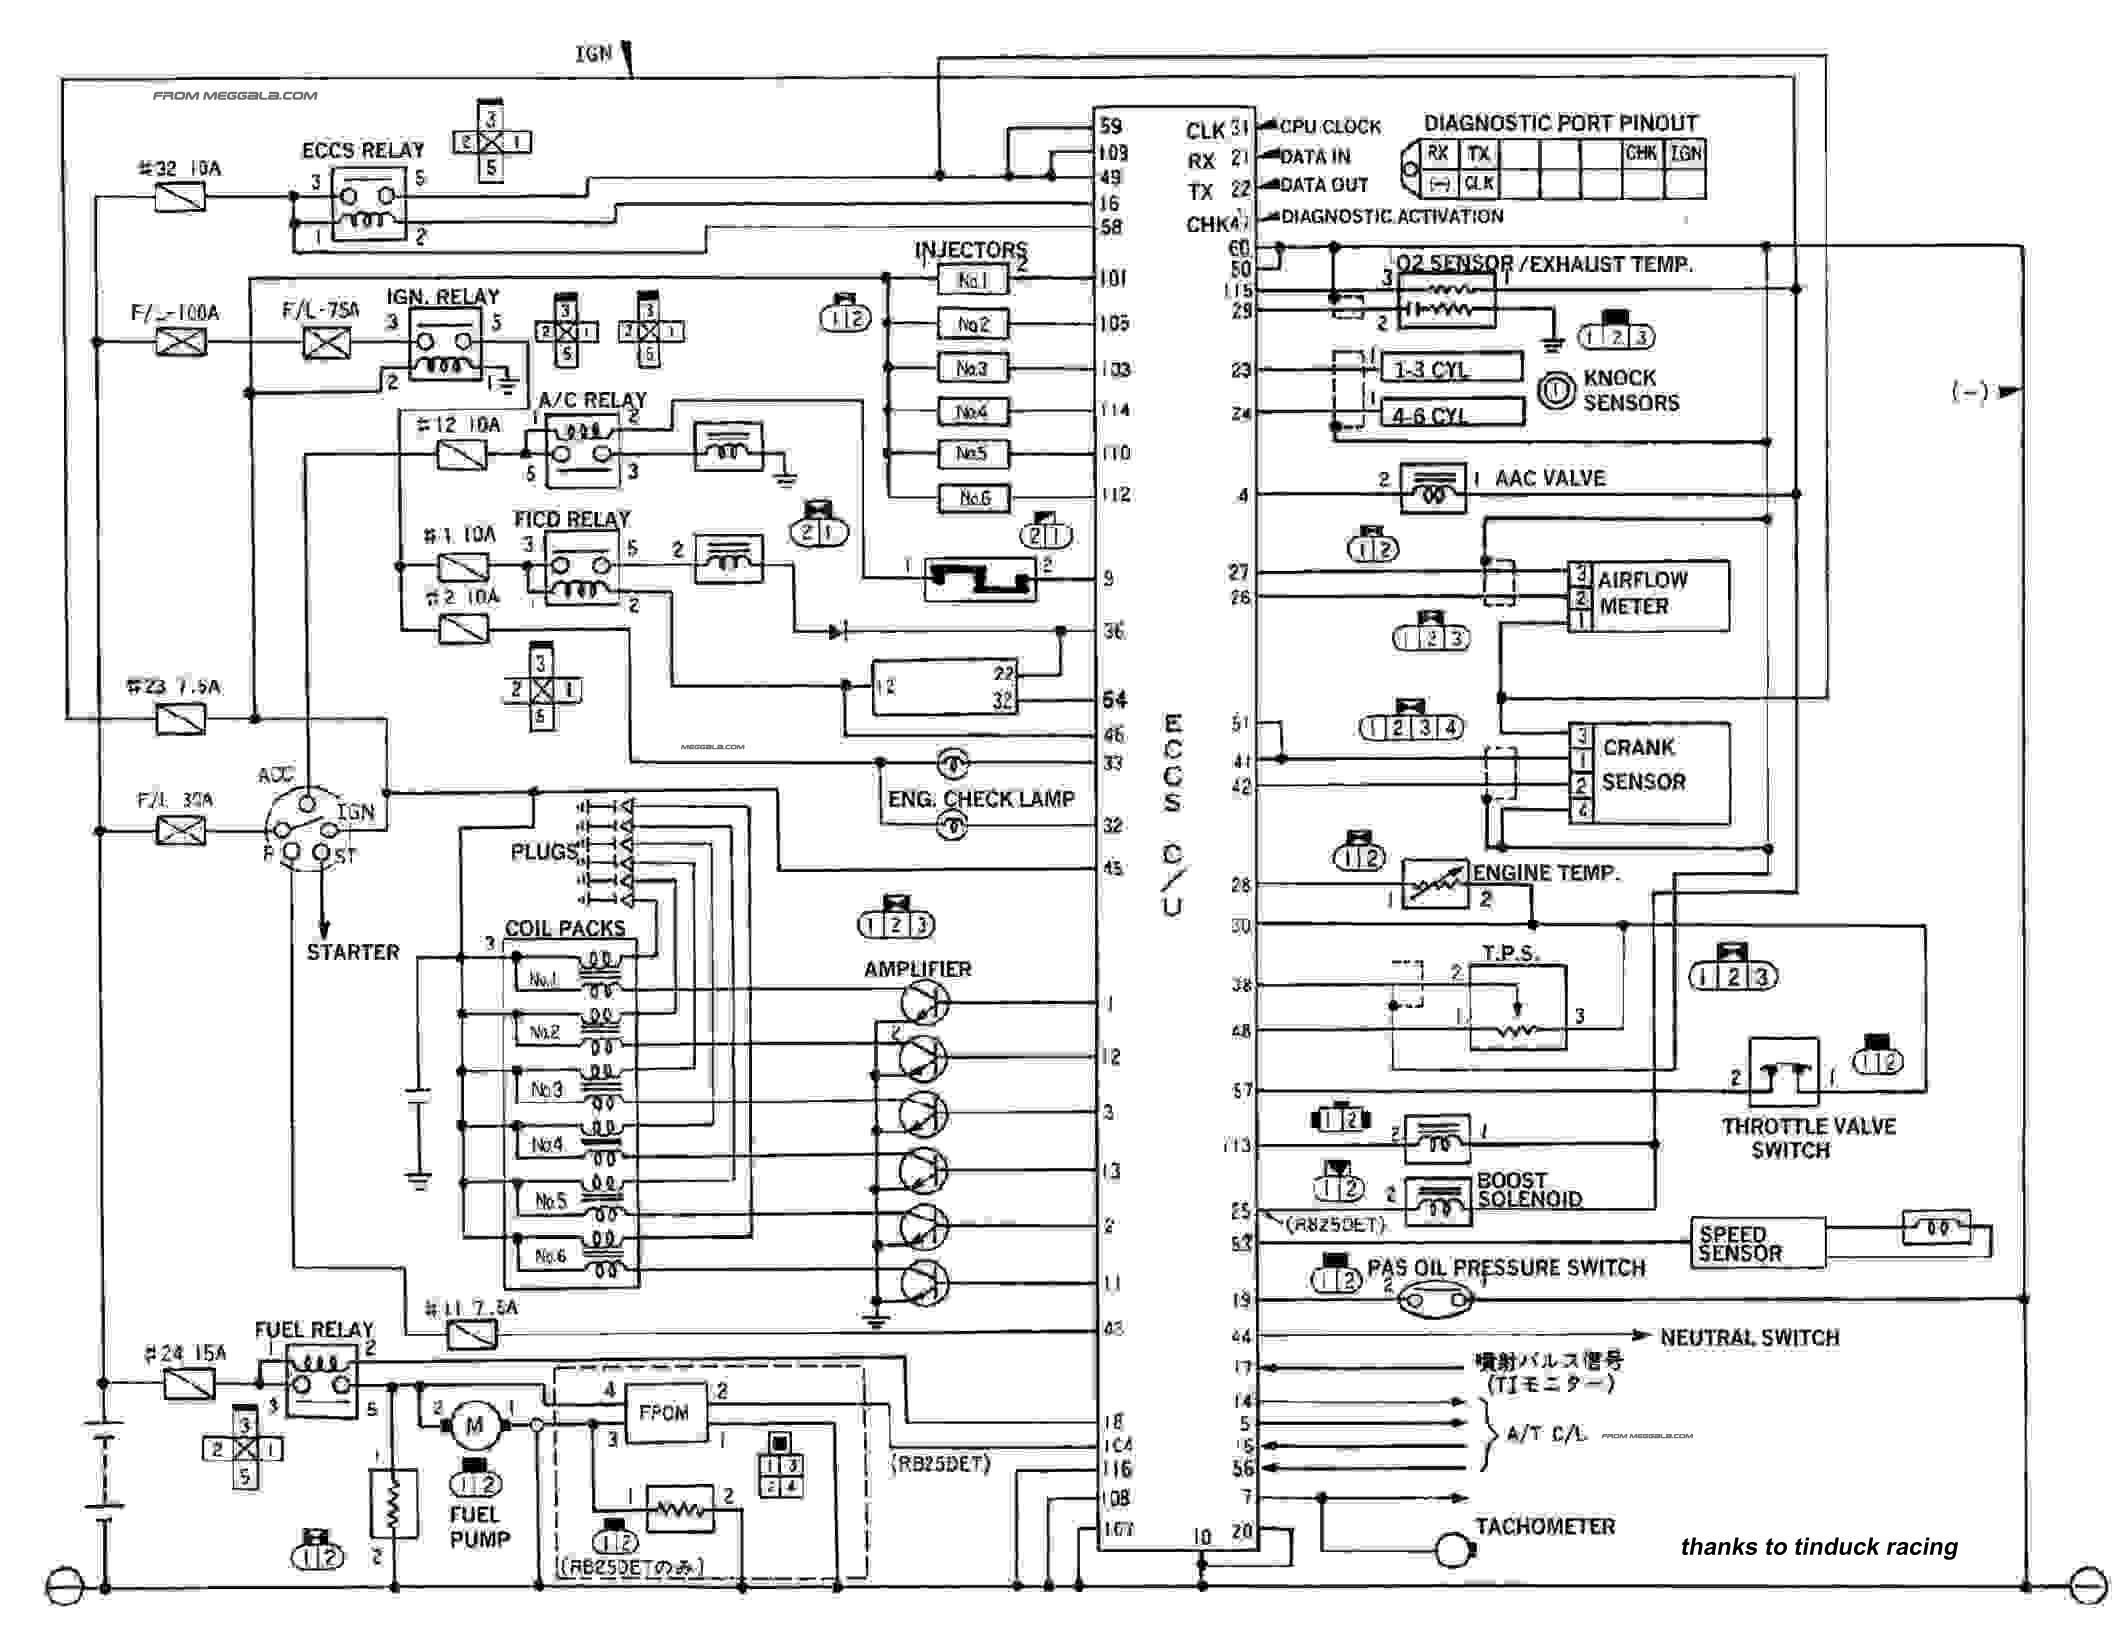 Enjoyable 97 Infiniti Wiring Diagram Wiring Library Wiring 101 Akebretraxxcnl